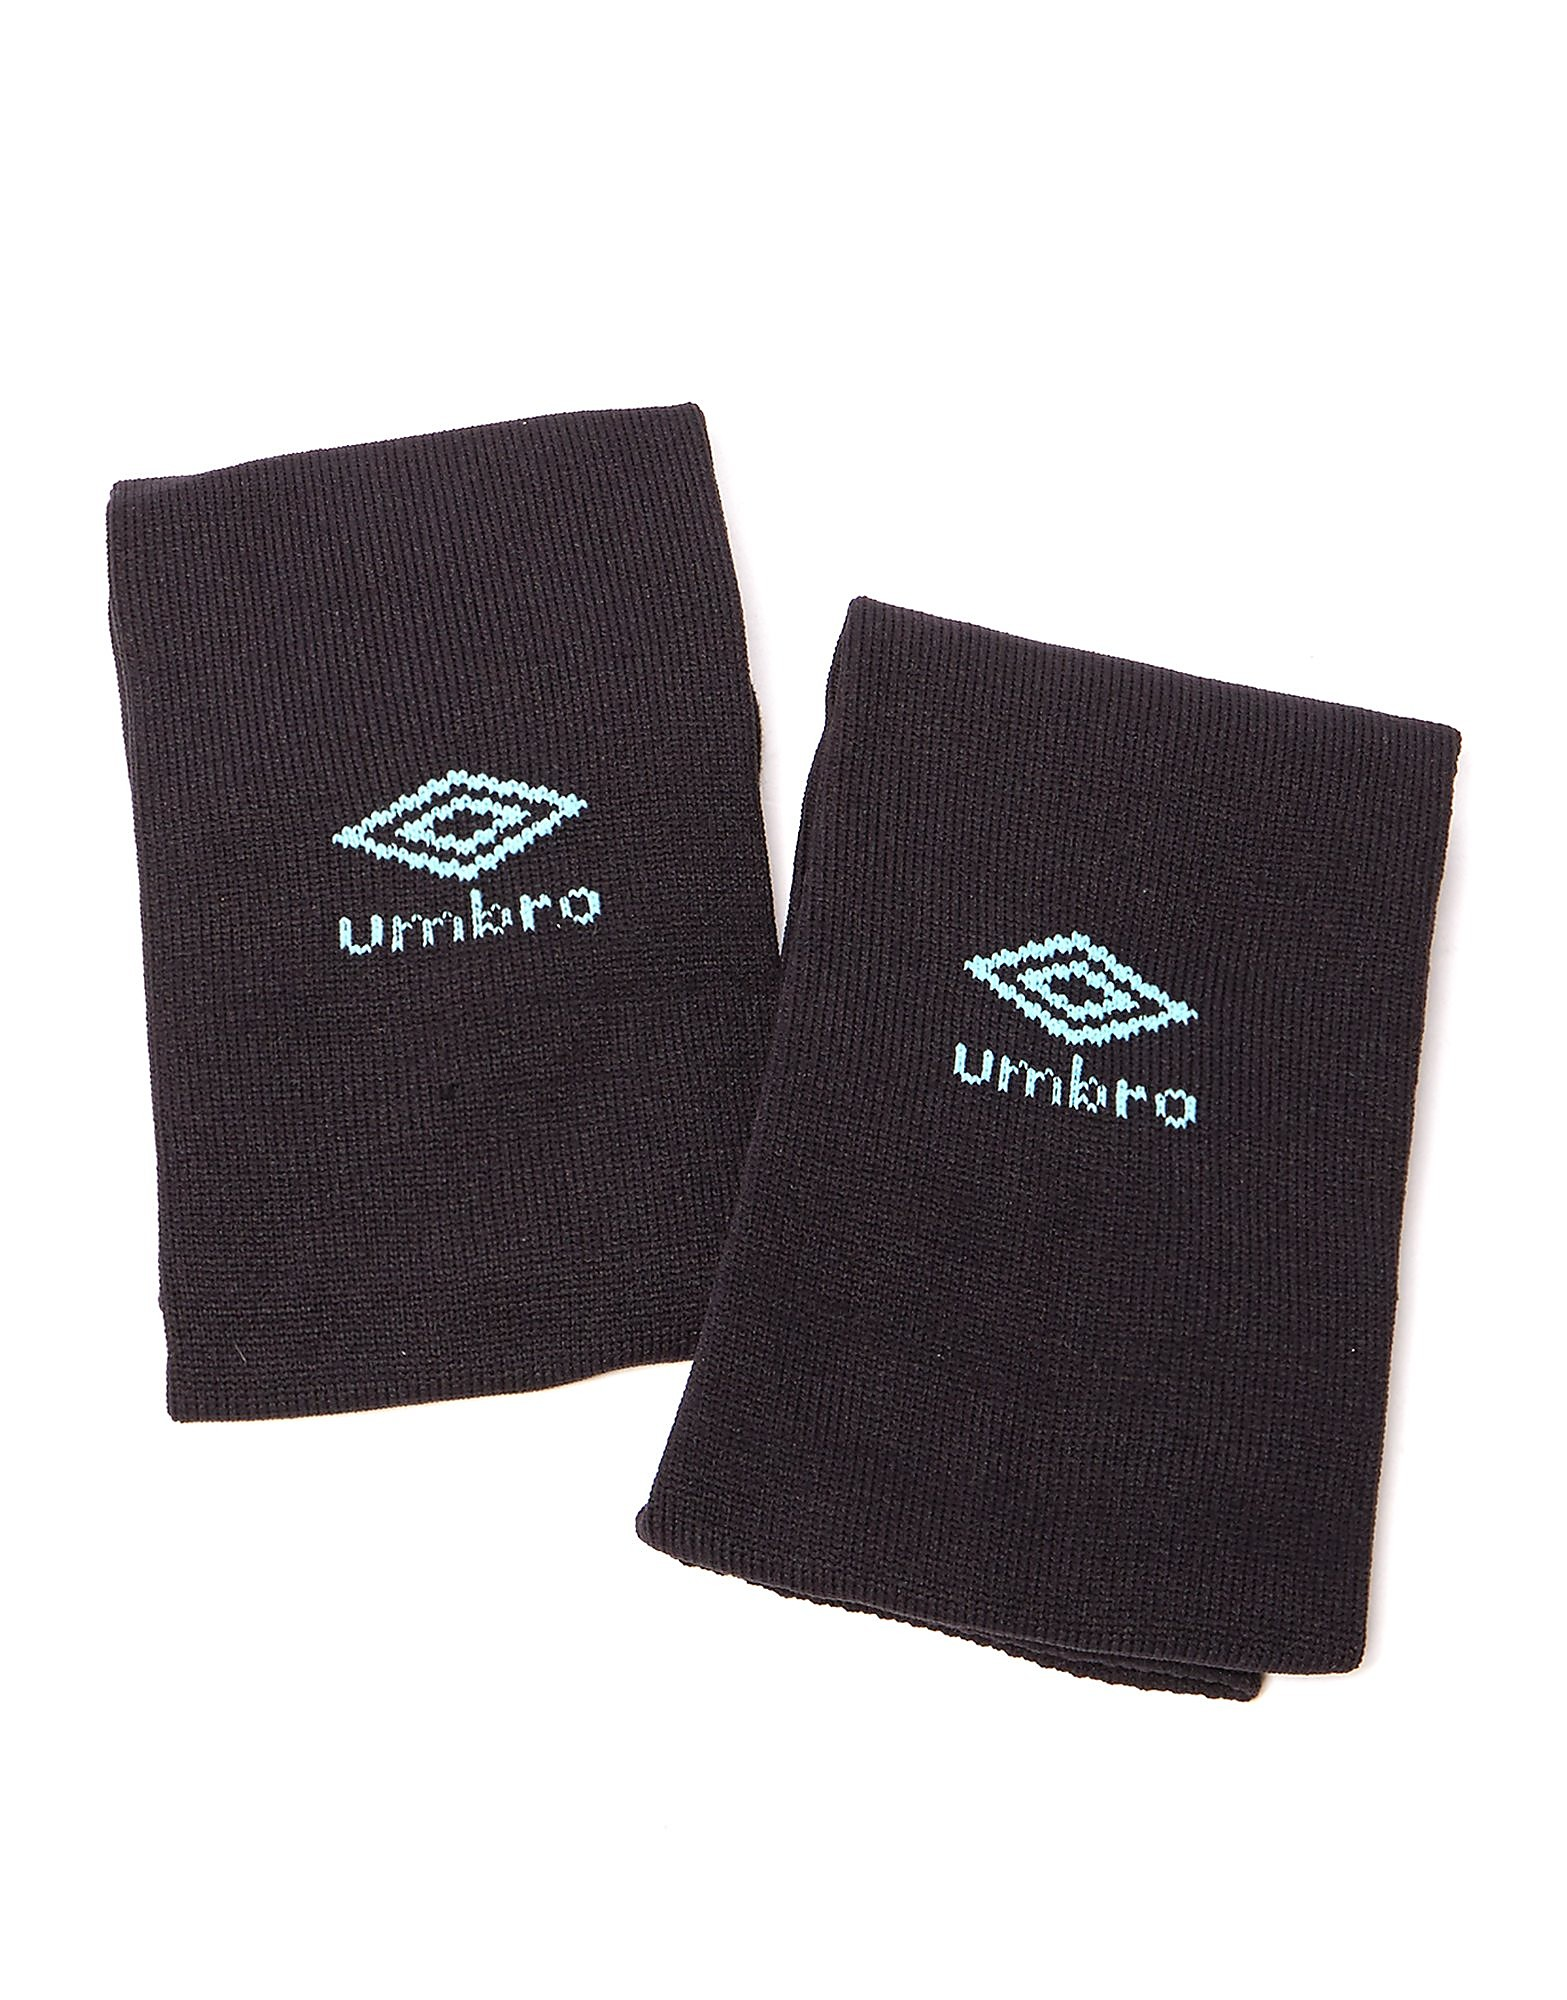 Umbro West Ham Utd 2017/18 Away Socks Junior